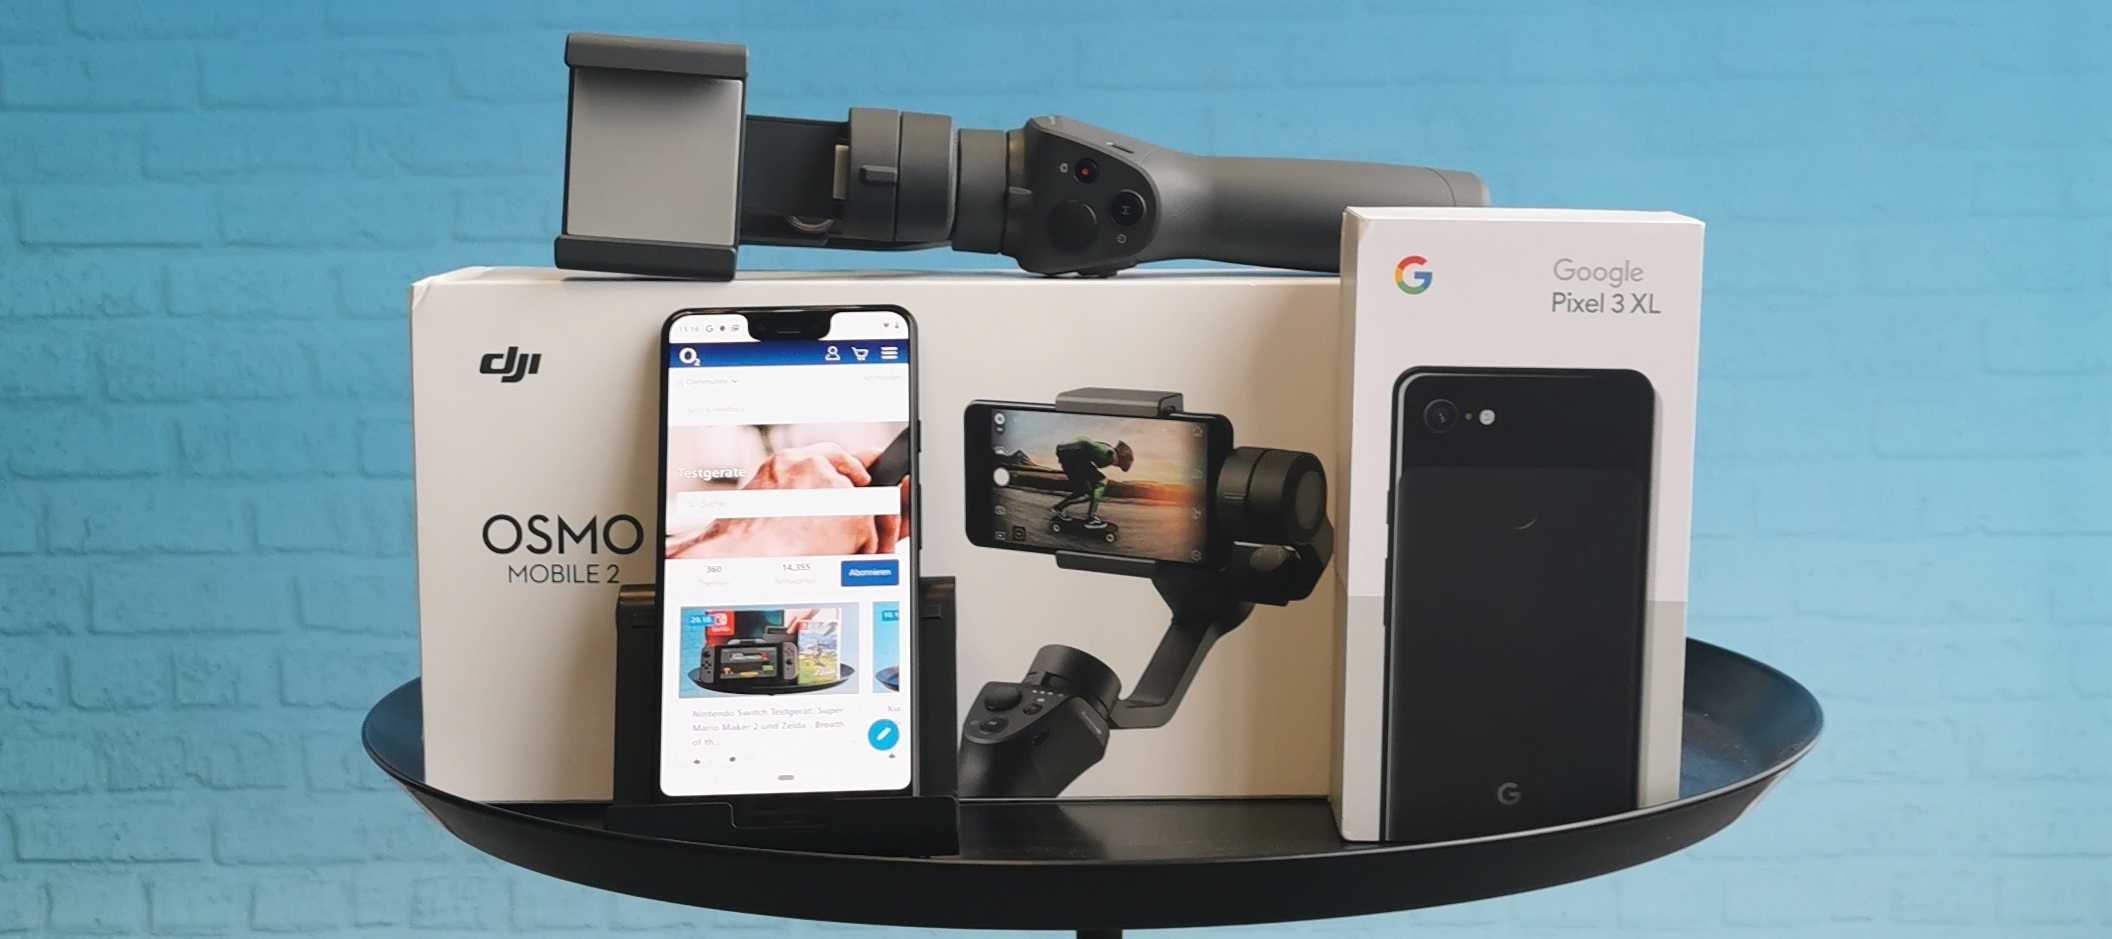 Google Pixel 3 XL & Osmo Mobile 2 Gimbal: Teste das Video-Bundle - Bewirb dich jetzt!